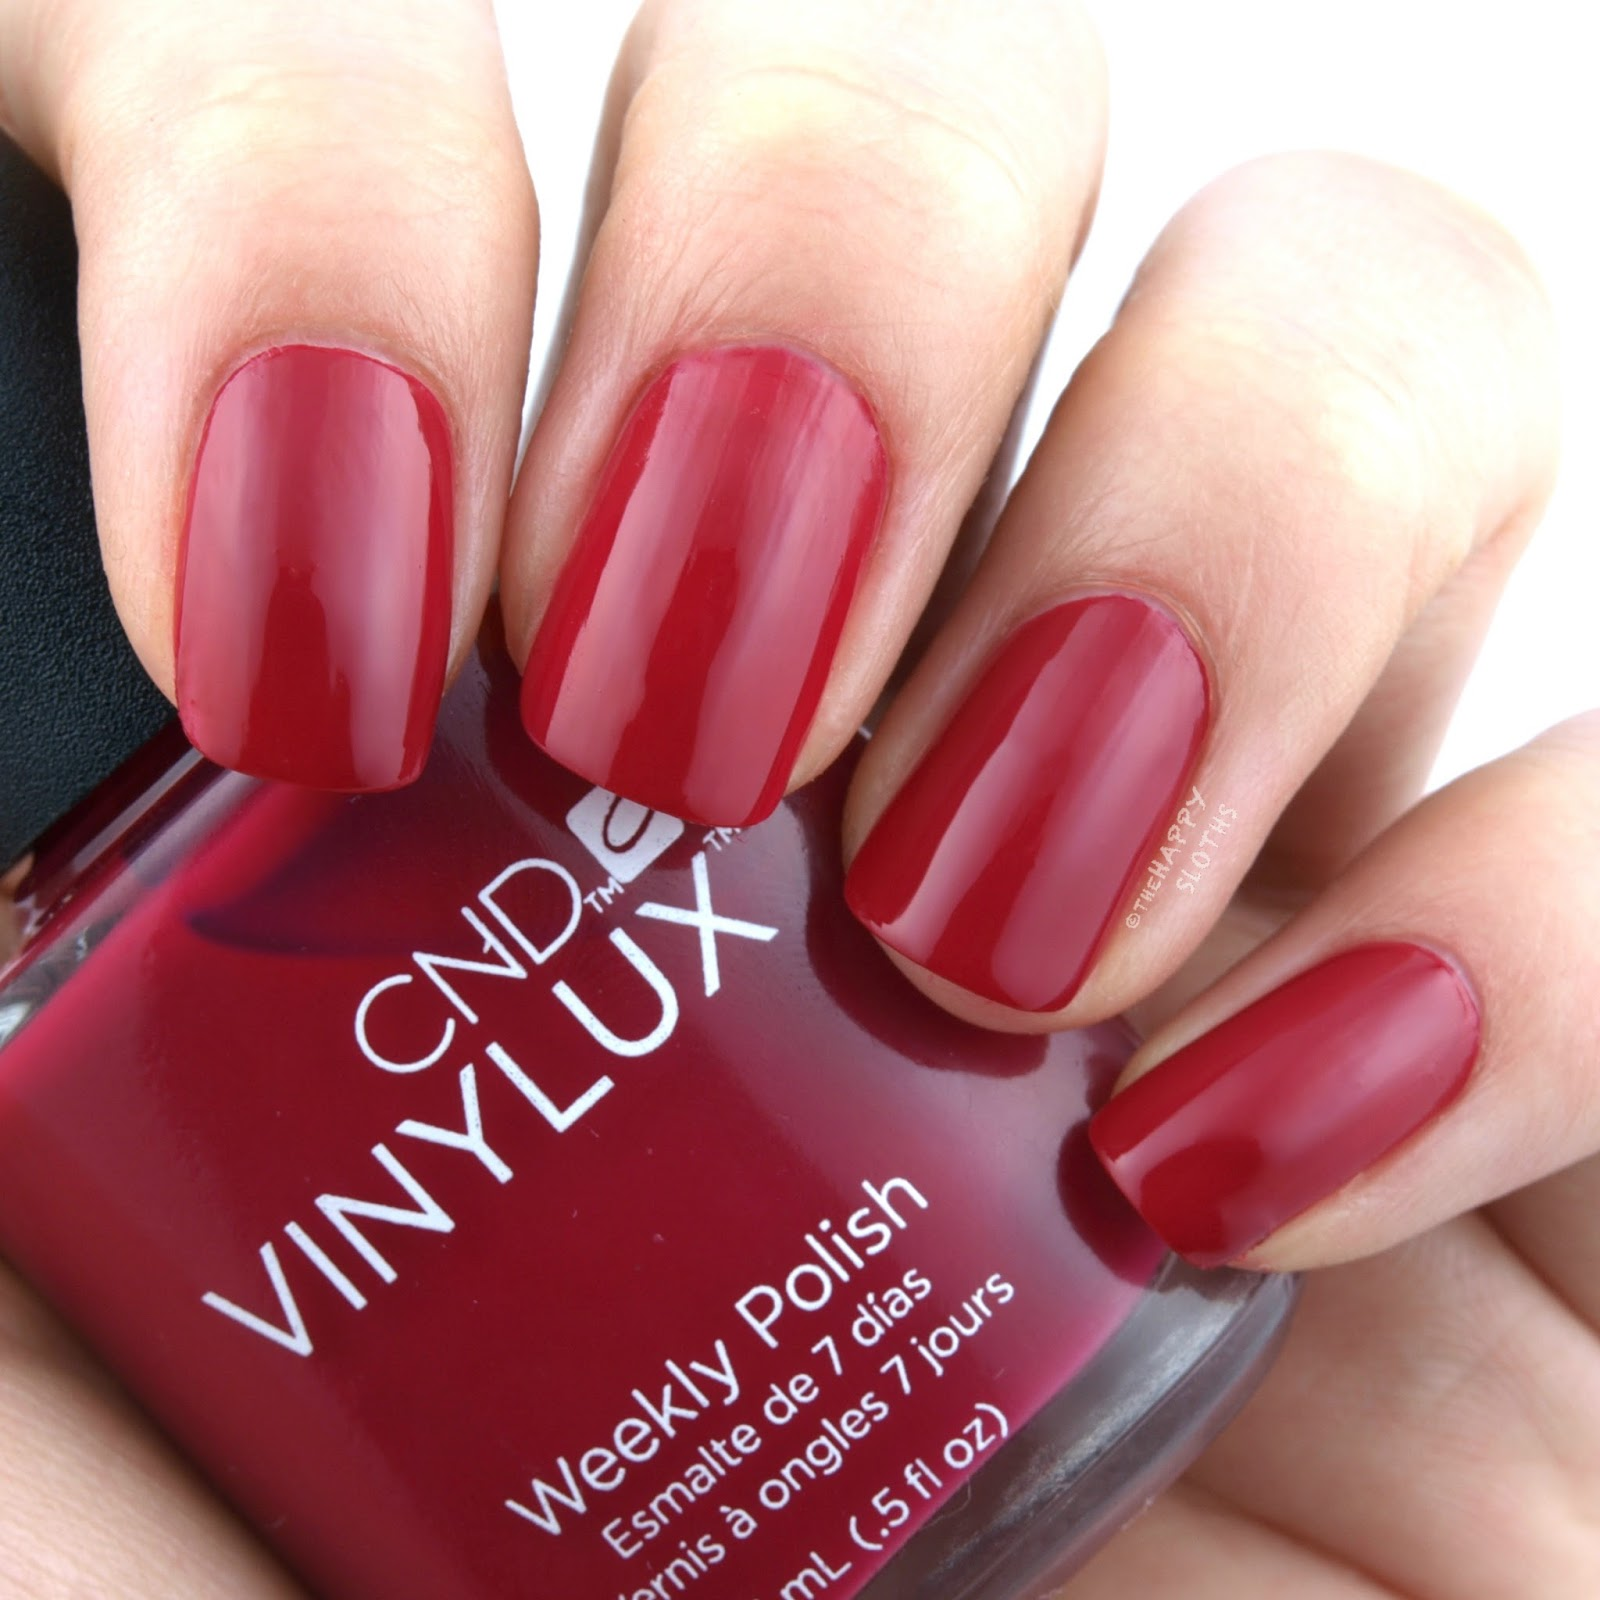 CND Summer 2017 Rhythm & Heat Ripe Guava: Review and Swatches